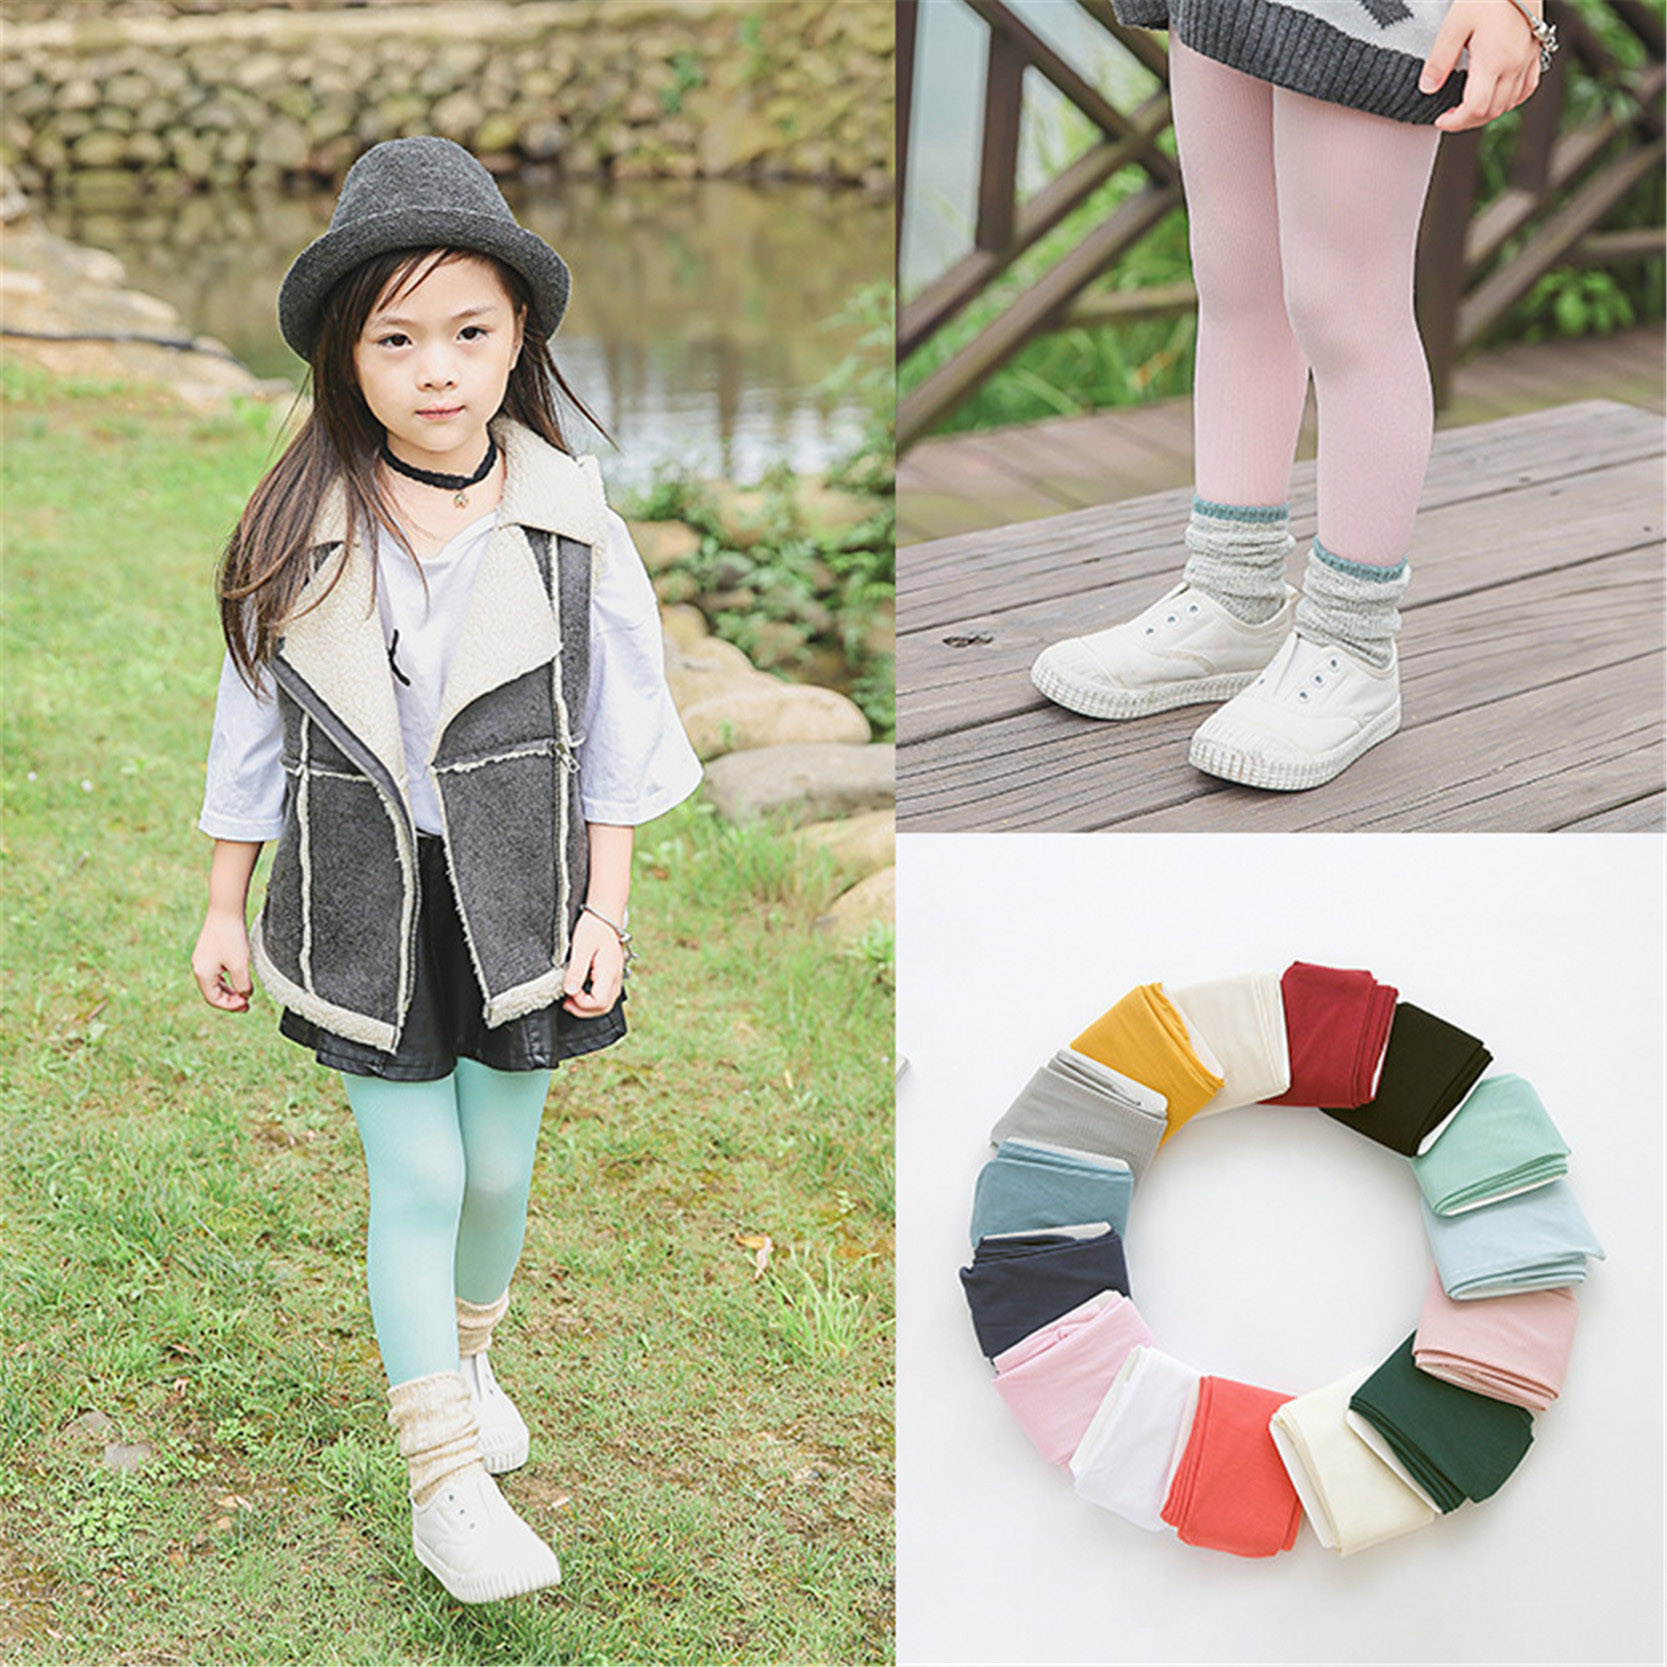 Solid Color Soft Kawaii Tights Lovely Velvet Children Girl Kids Pantyhose Tights Dance Tights Stocking For